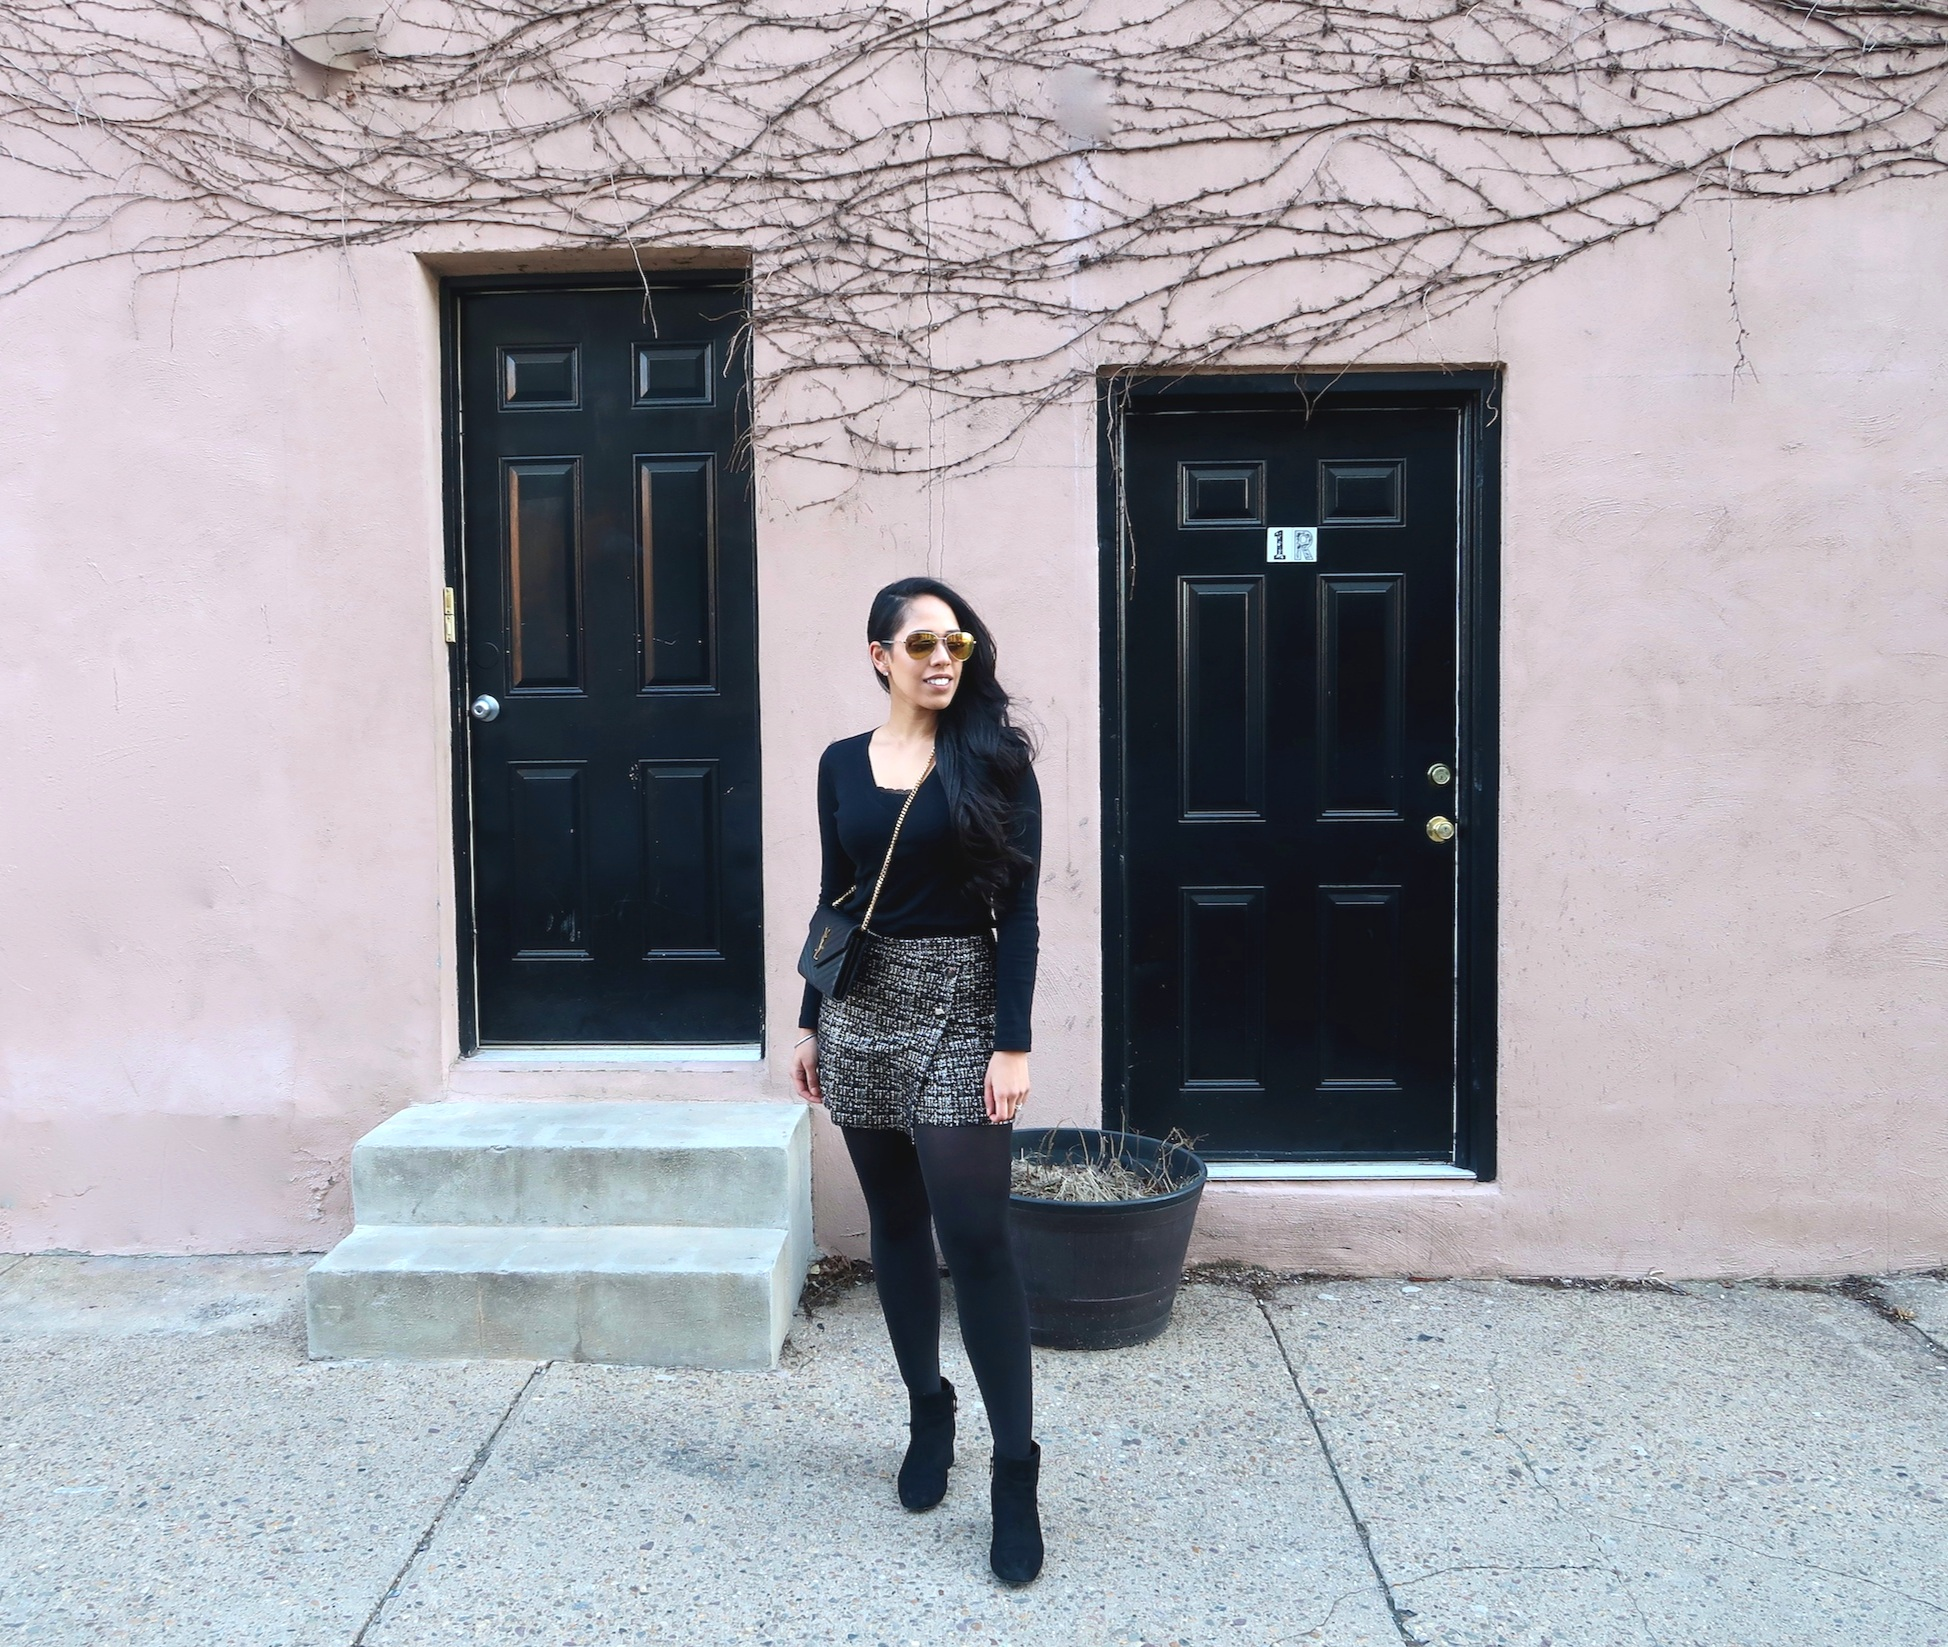 fashion-blogger-city-philadelphia-spring-fashion.JPG